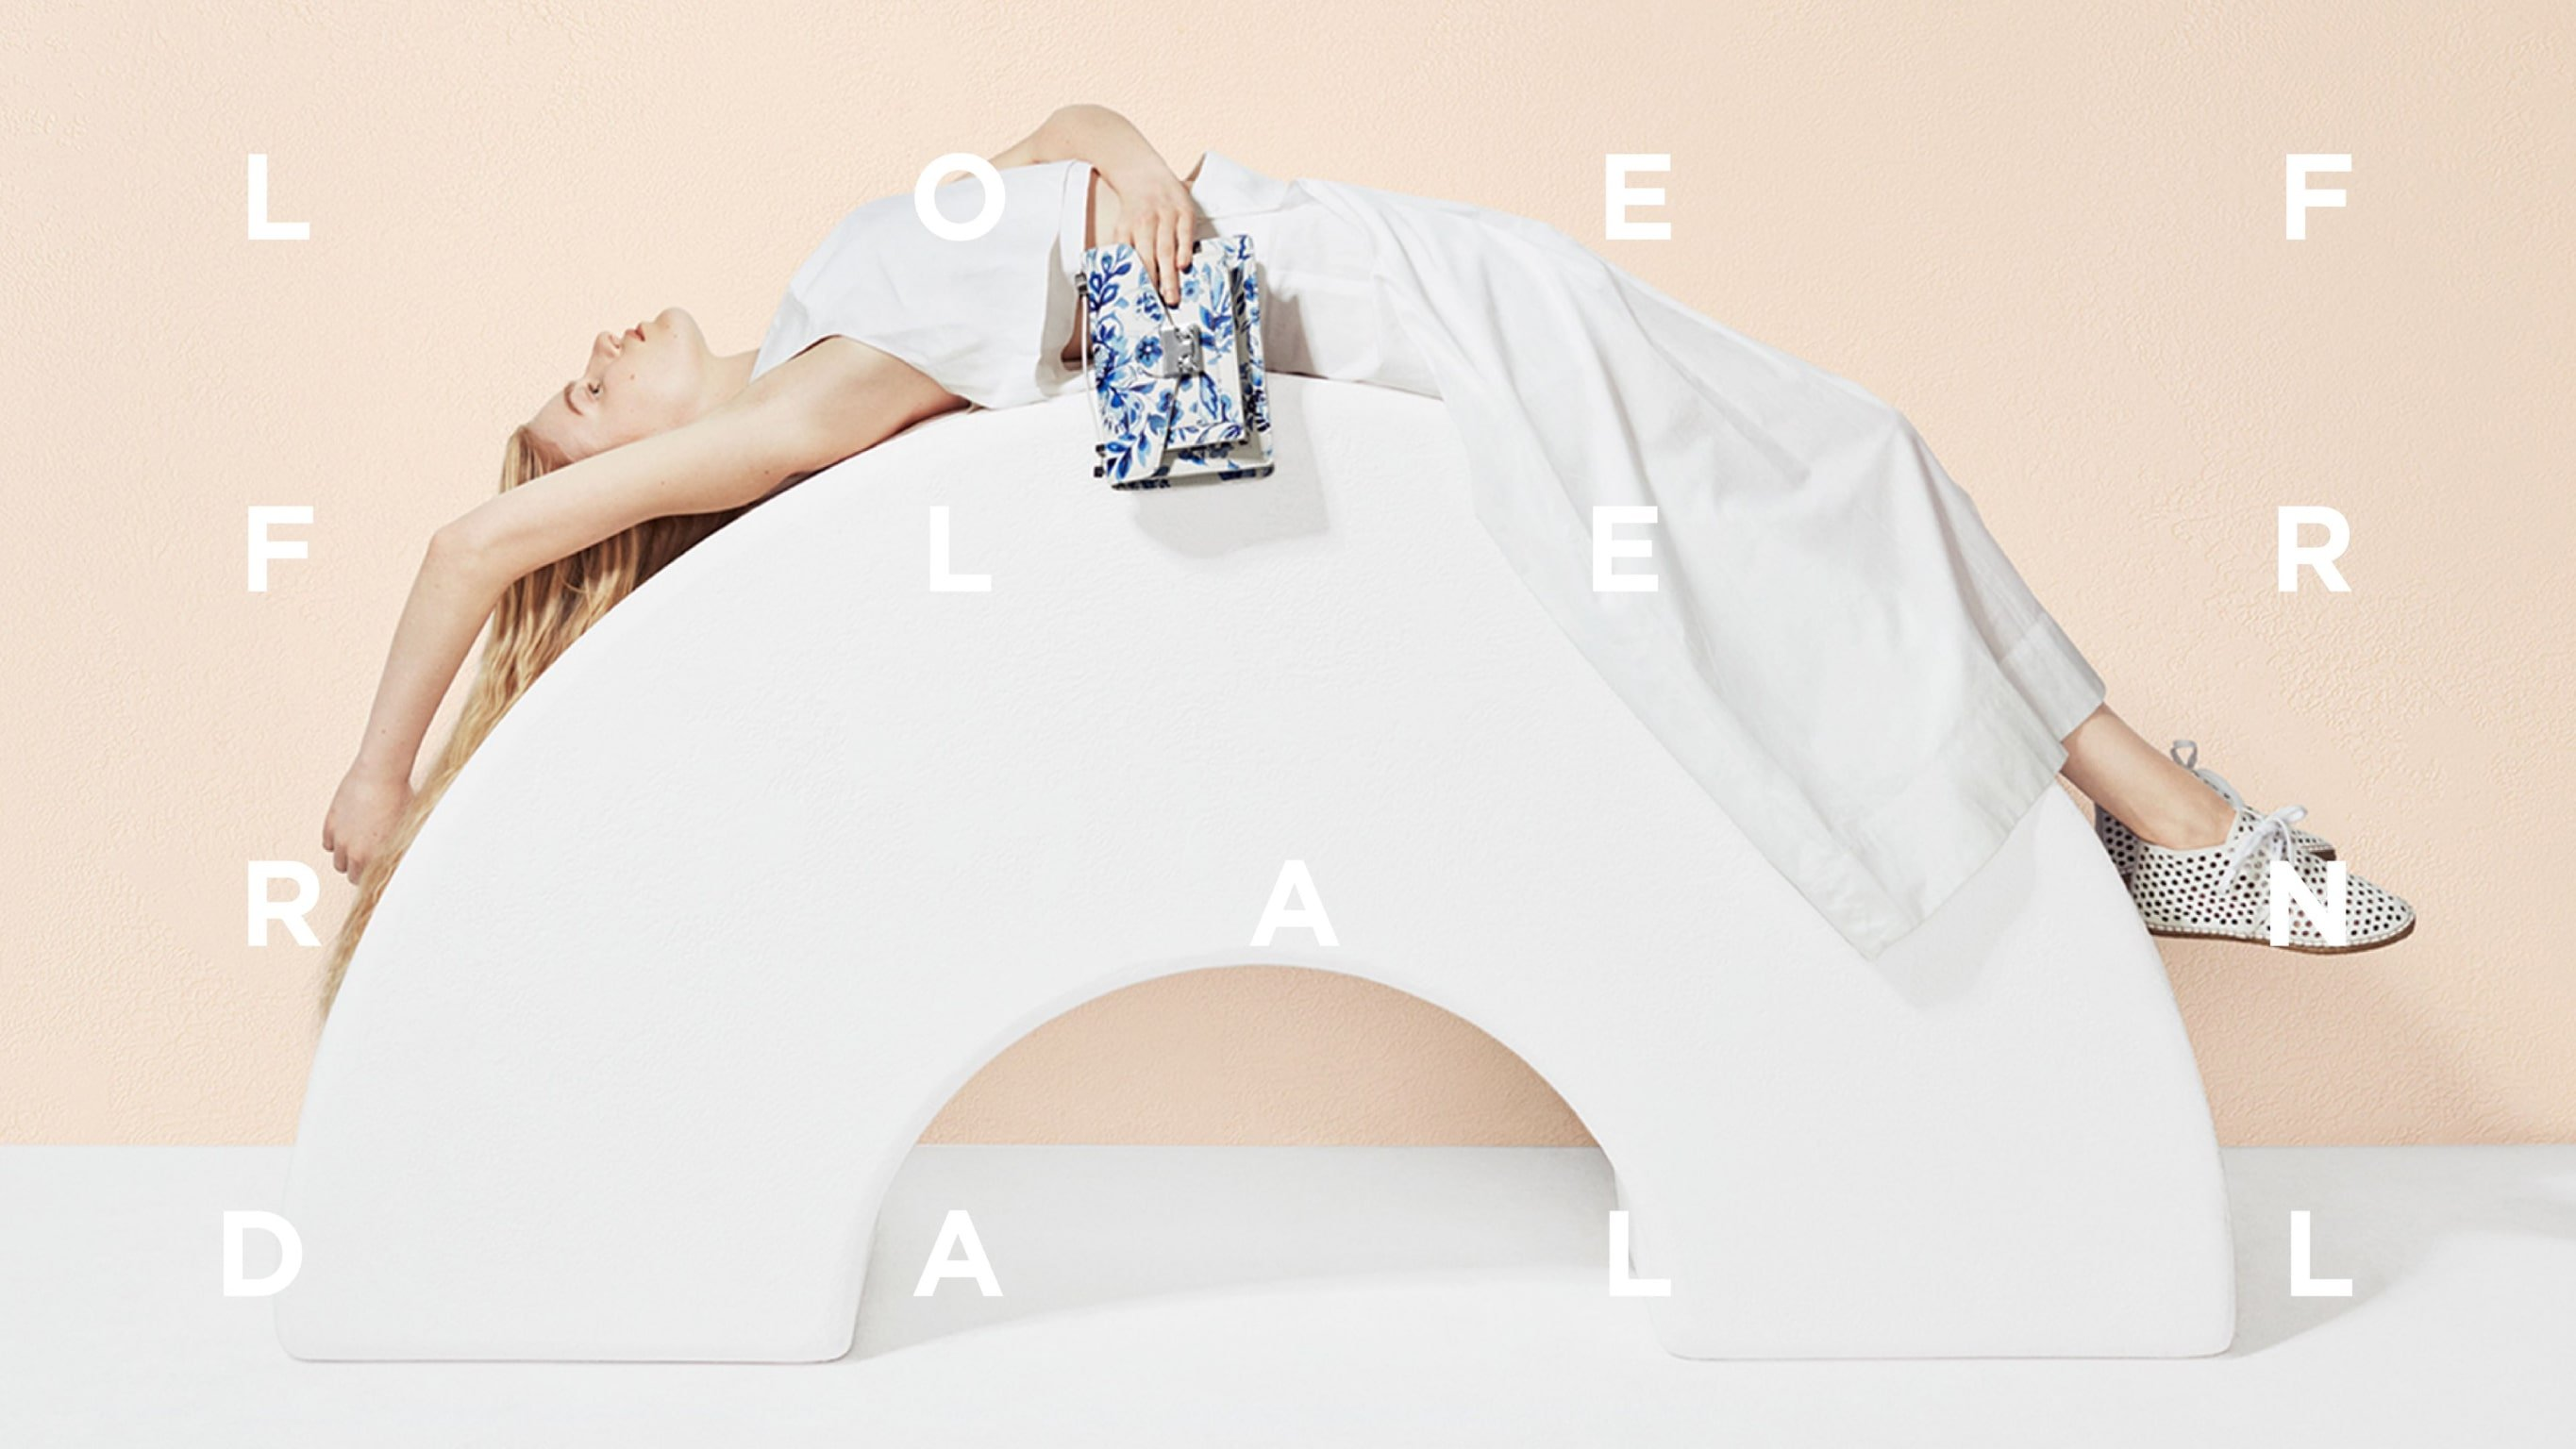 Loeffler Randall ad featuring model laying on white arch wearing white sneakers and holding blue embroidered pouch. Branding and Art direction by RoAndCo